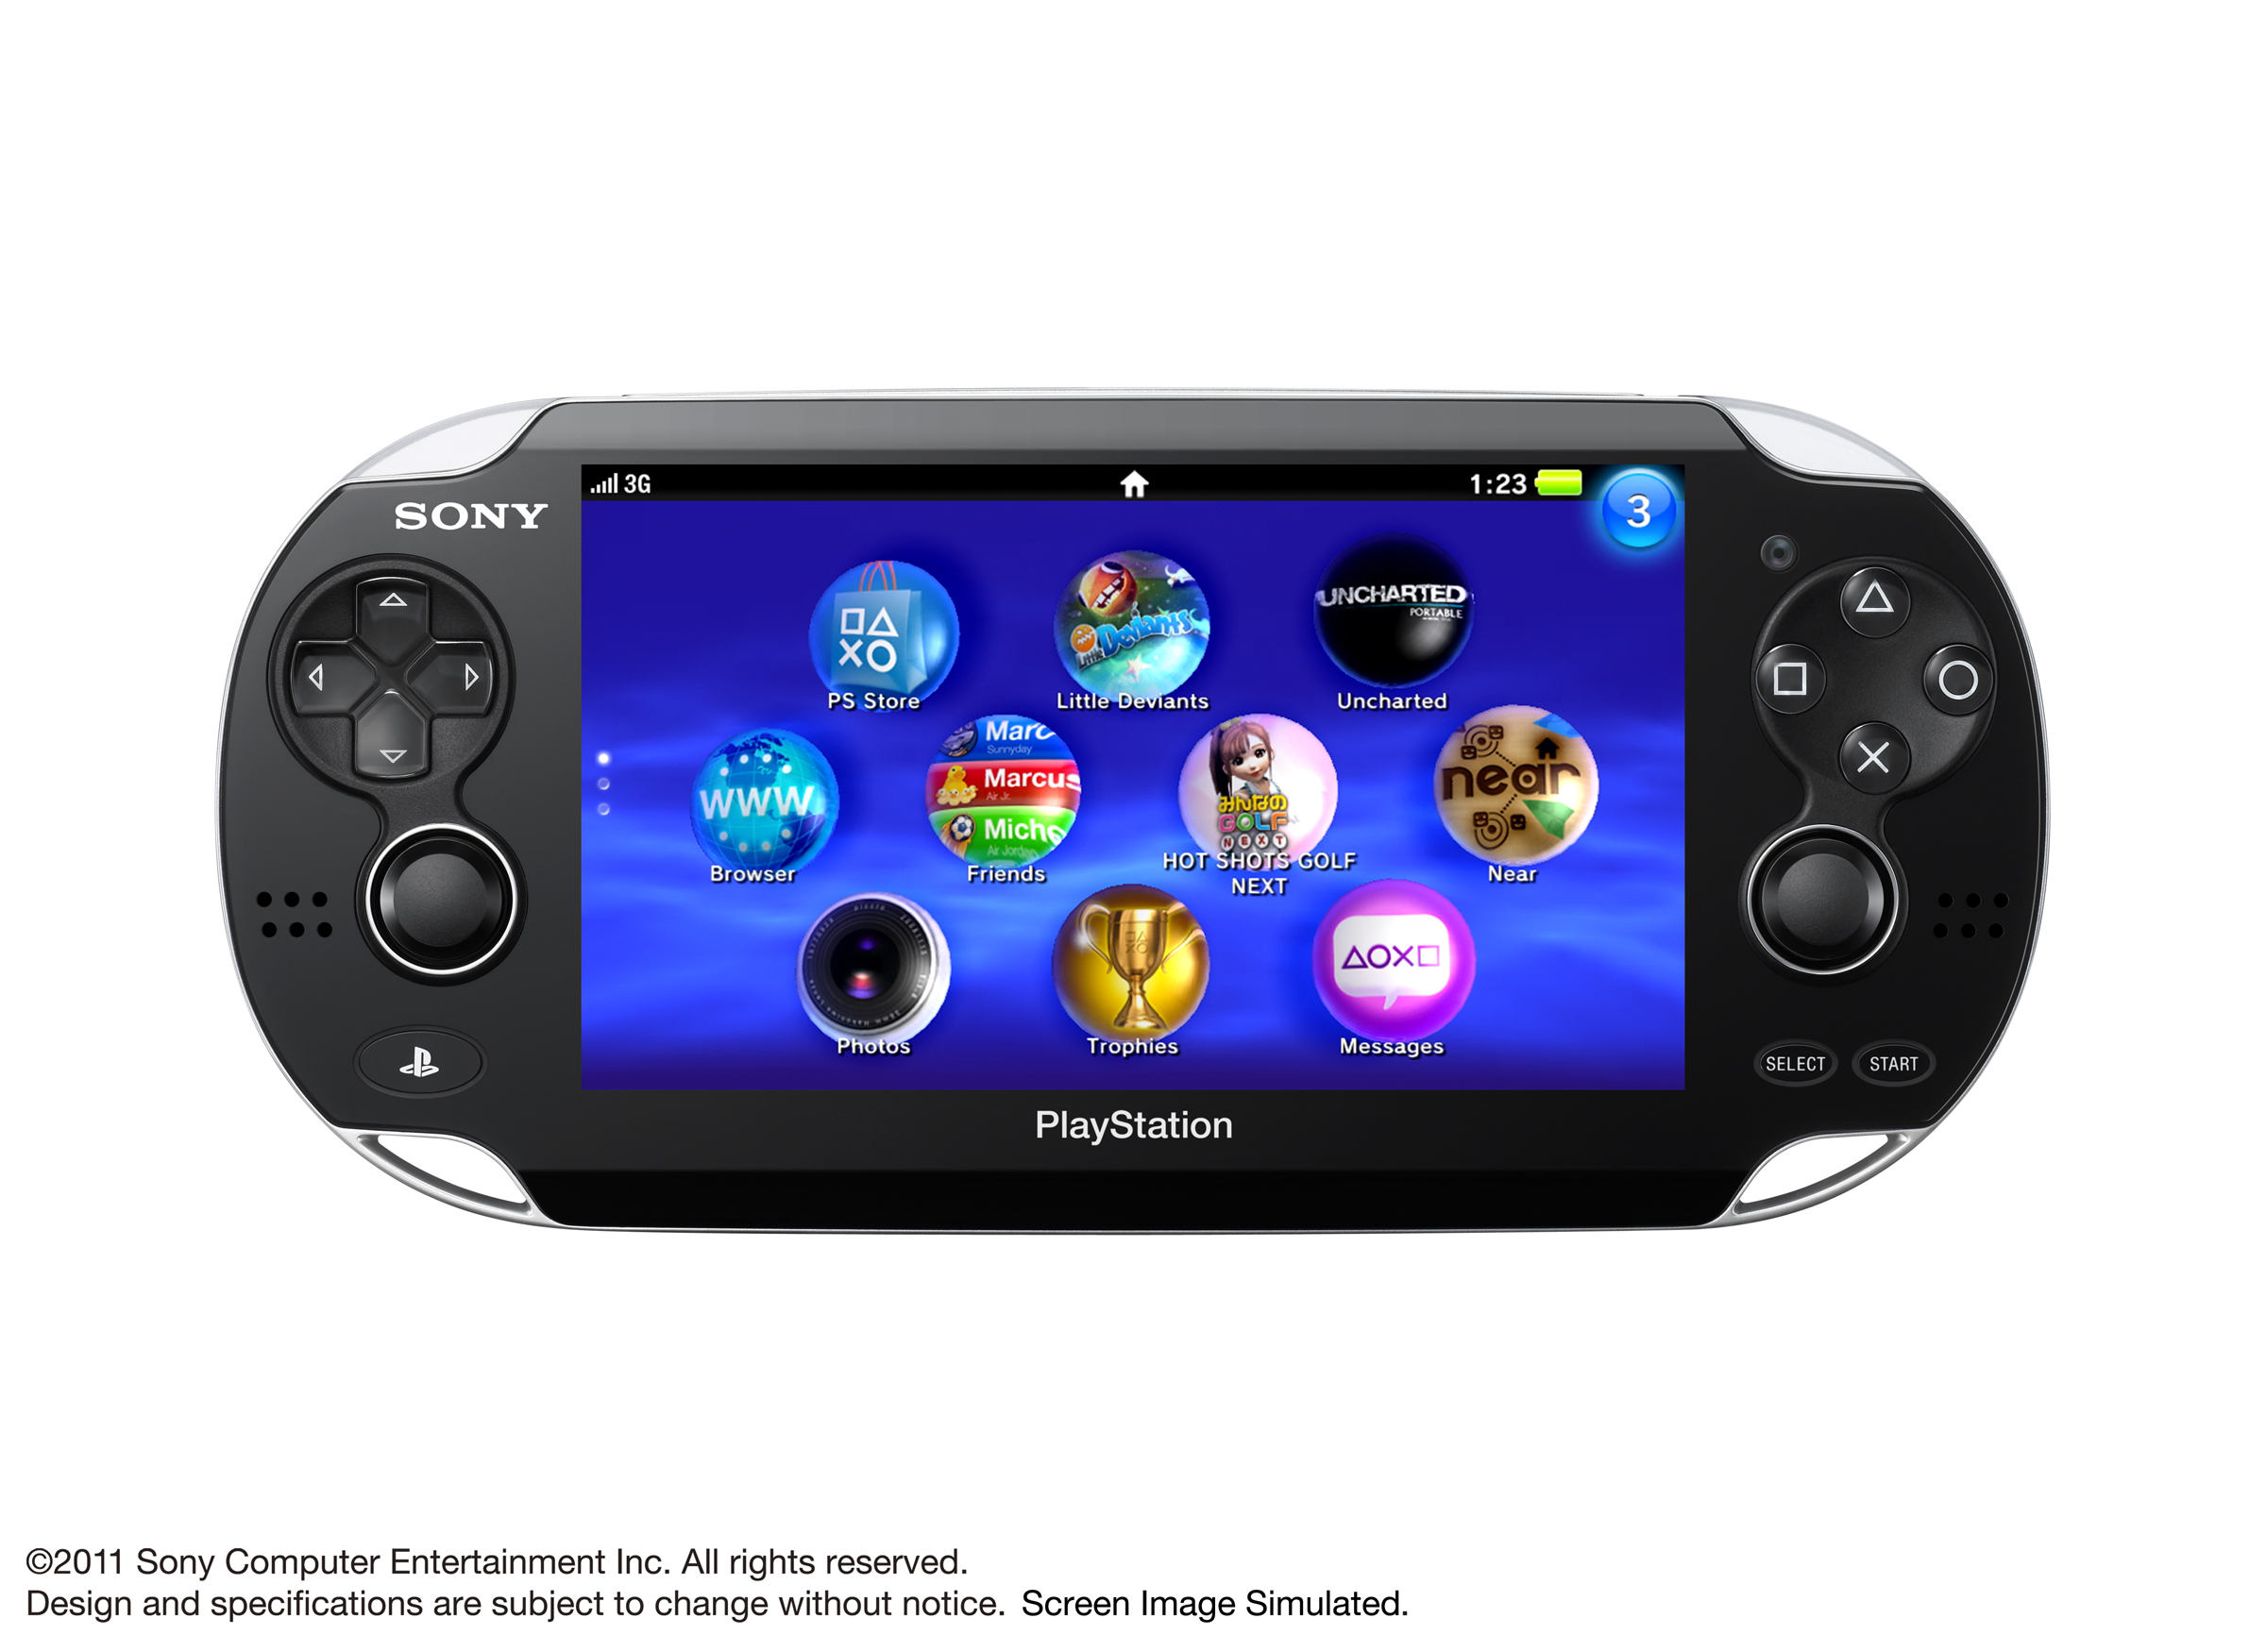 SONY Next Generation Portable Entertainment Device NGP